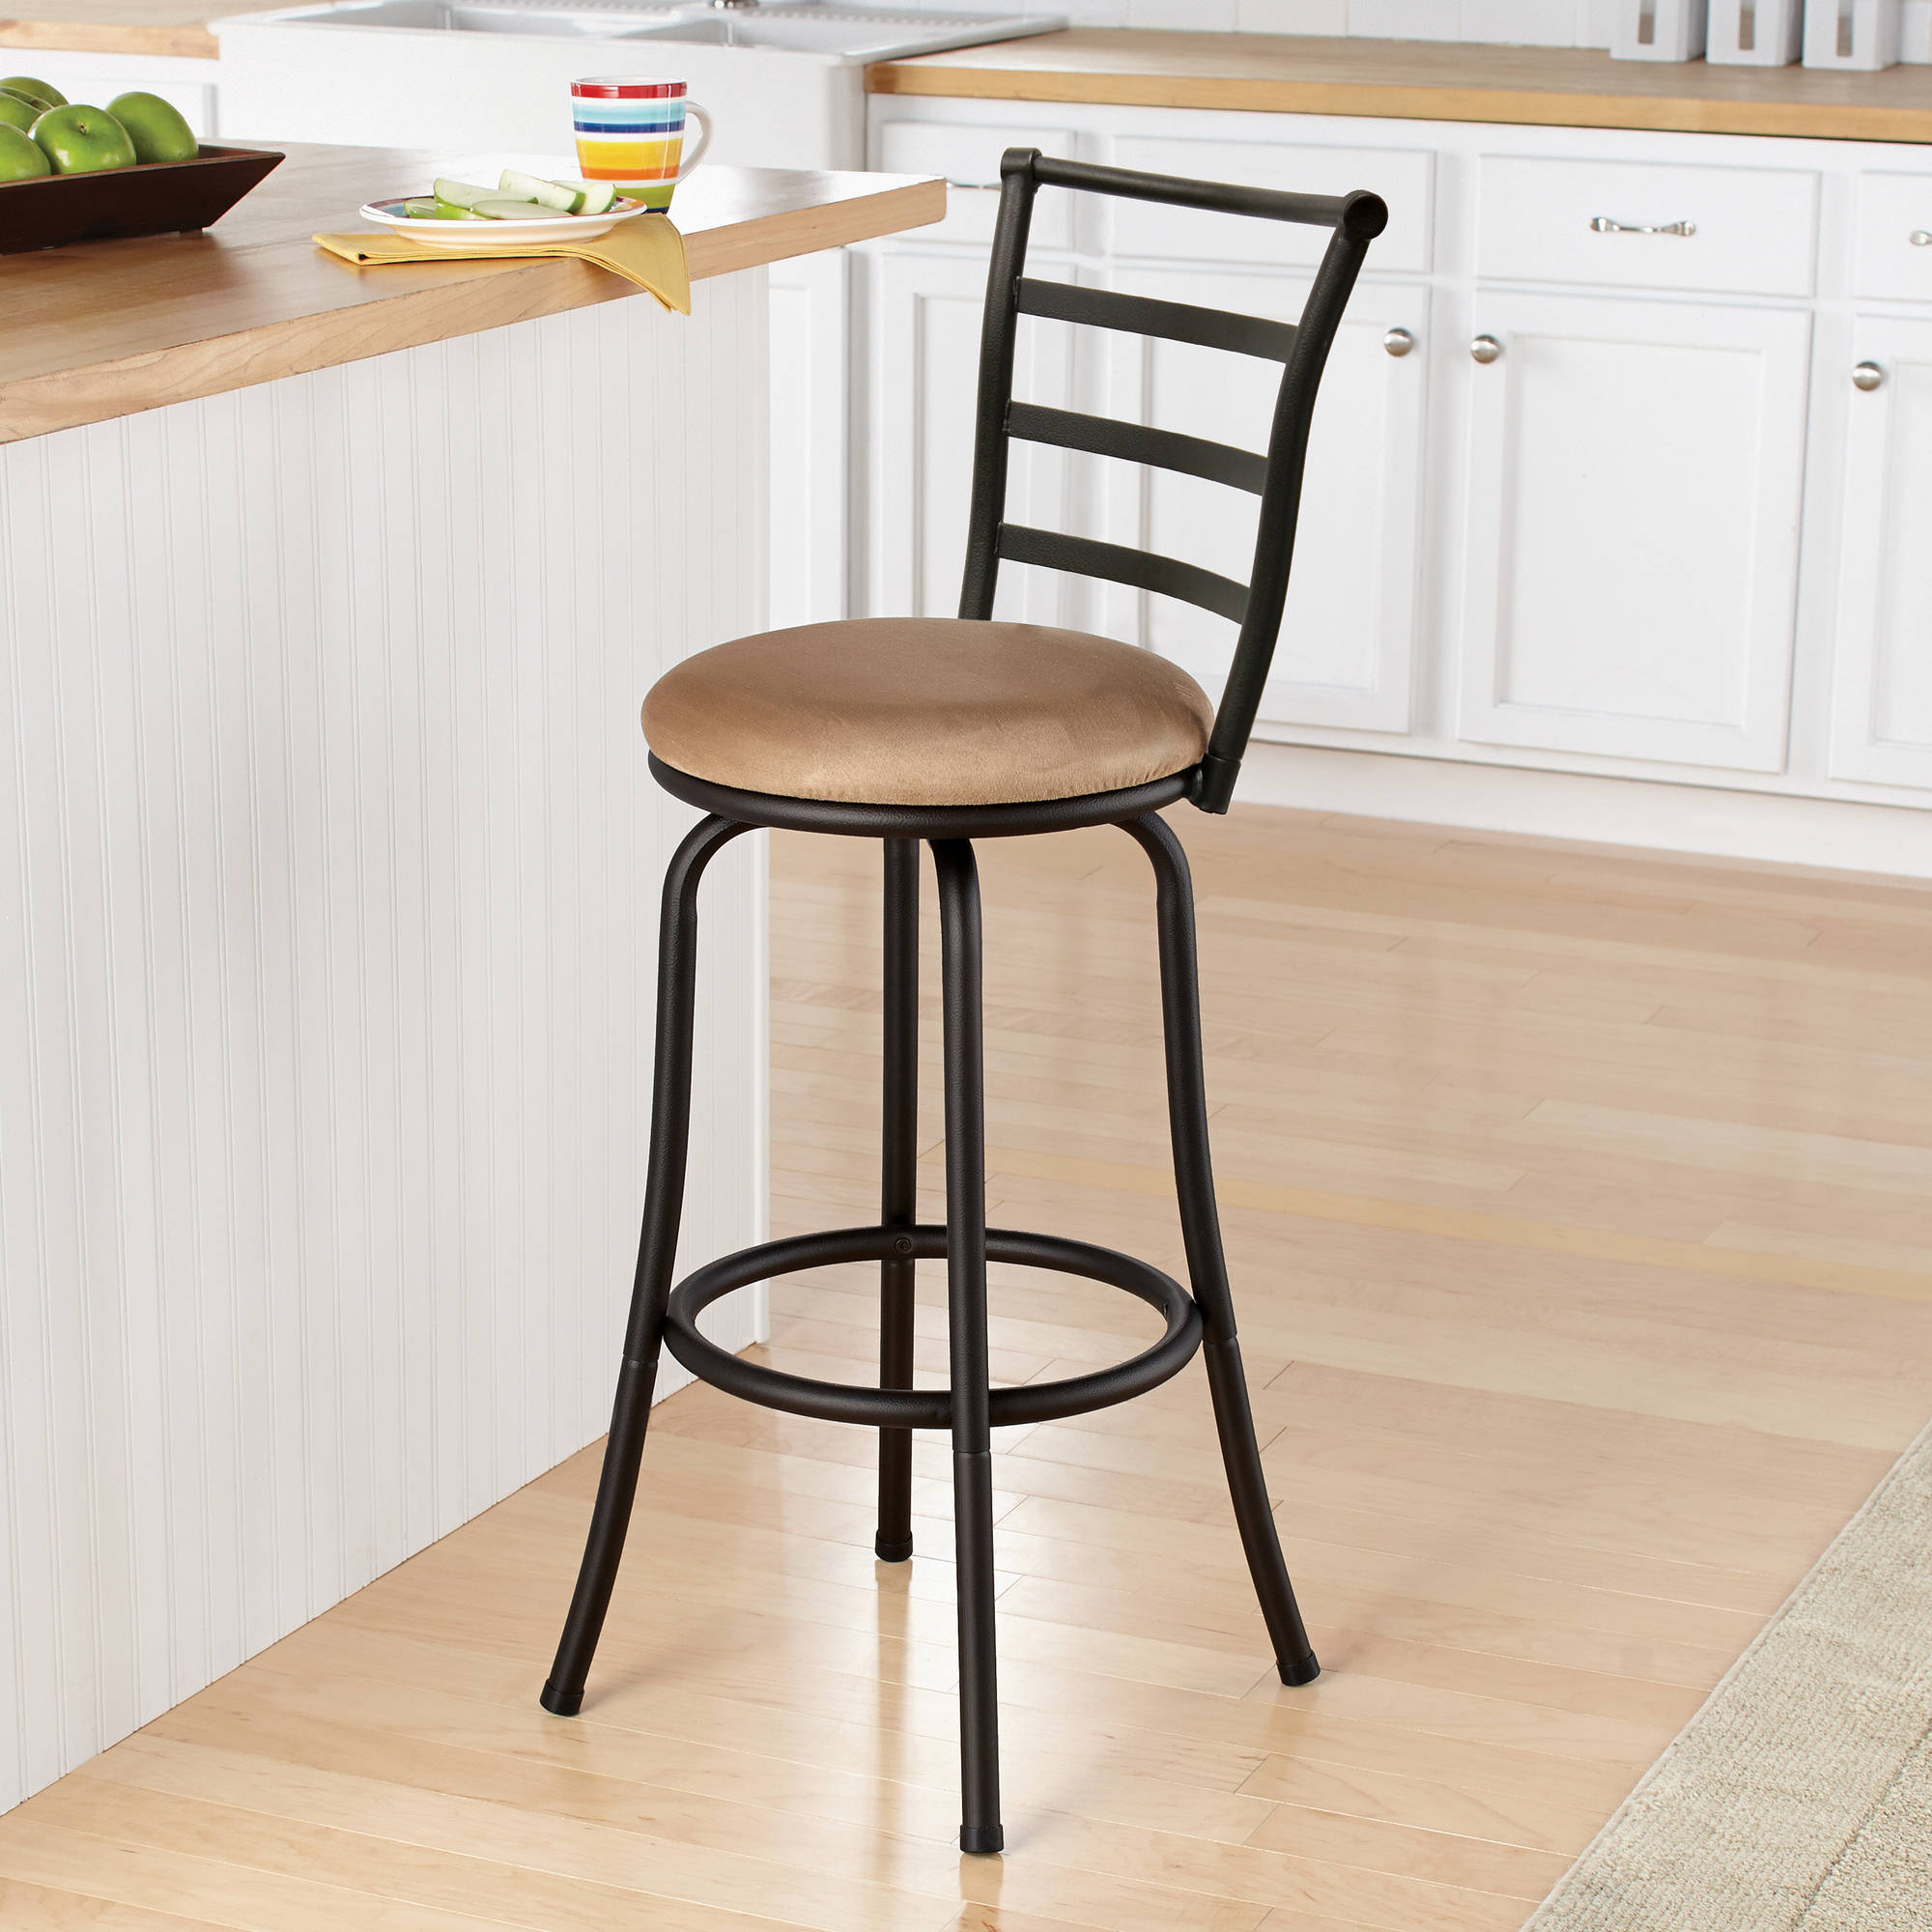 Mainstays Ladder Back Black Barstool Multiple Colors Walmart